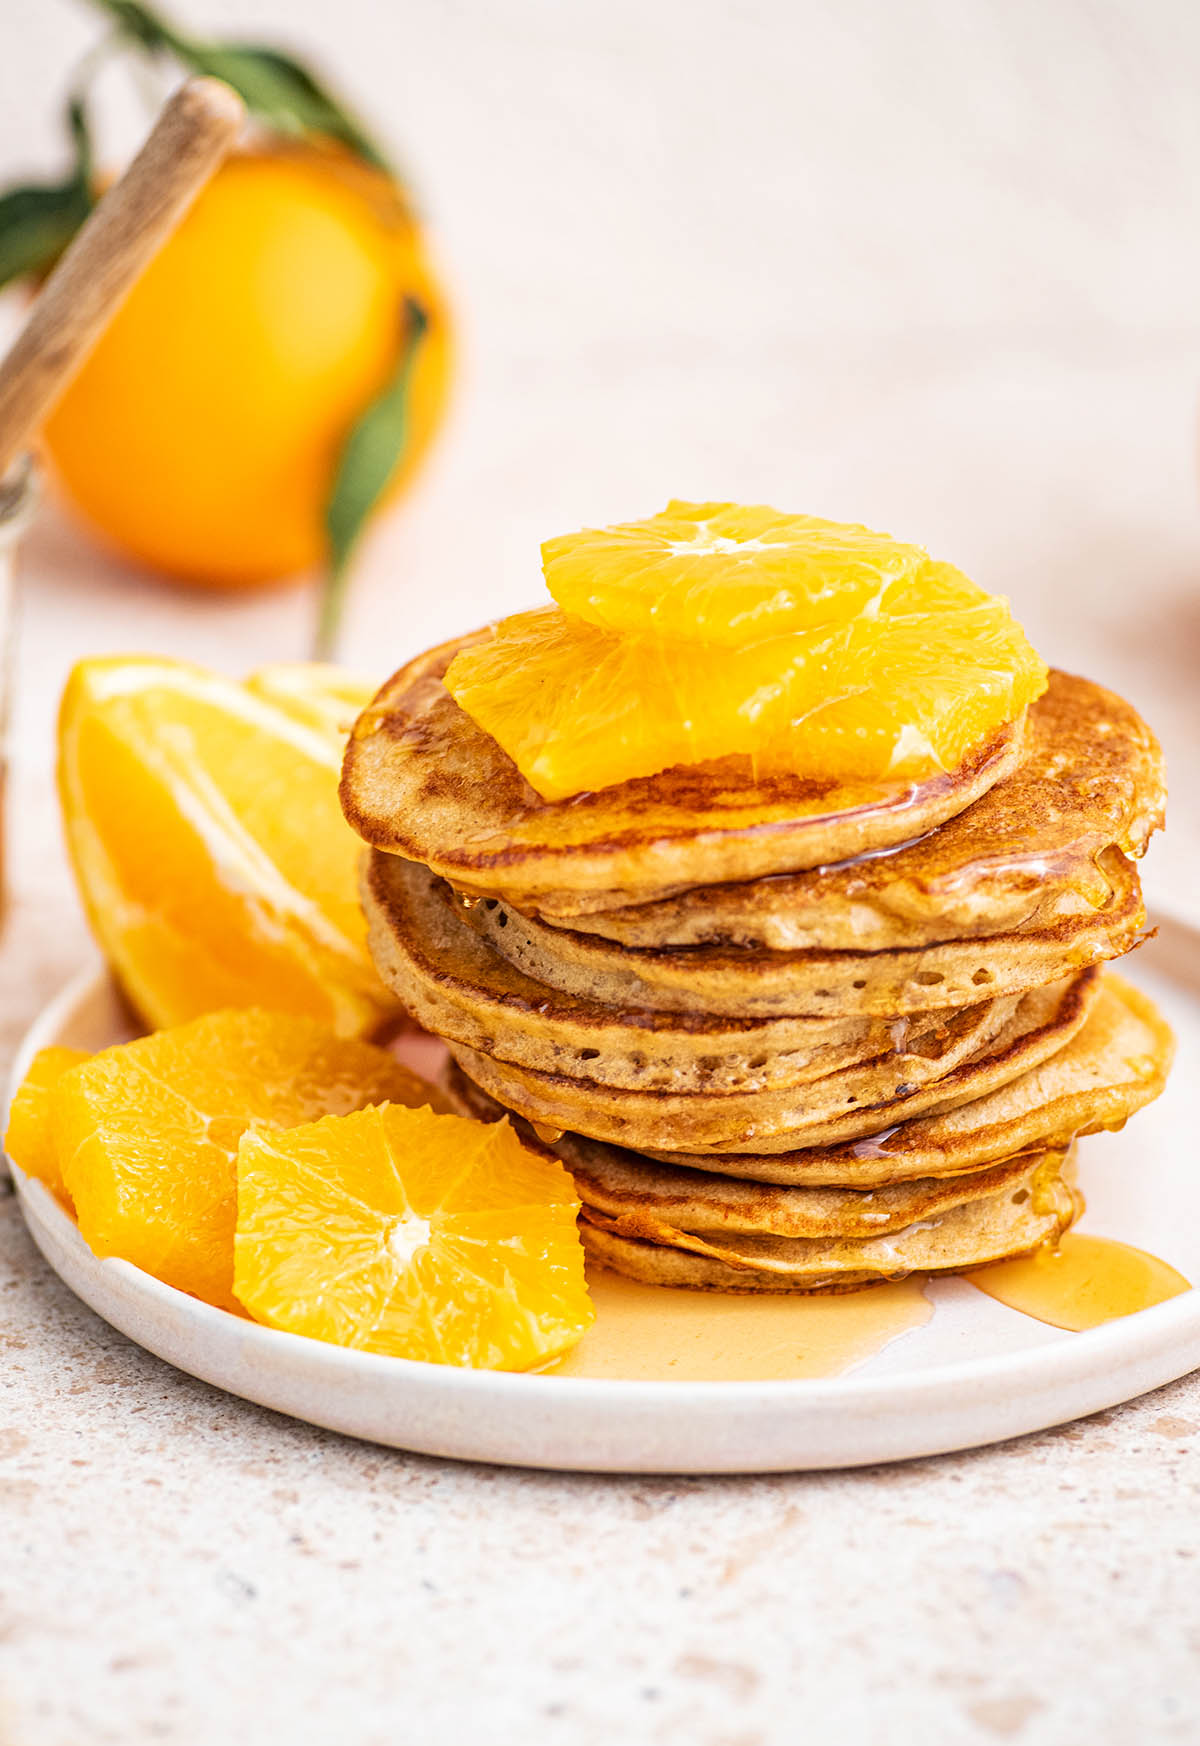 45º angle shot of a stack of sourdough starter pancakes on a plate with oranges.